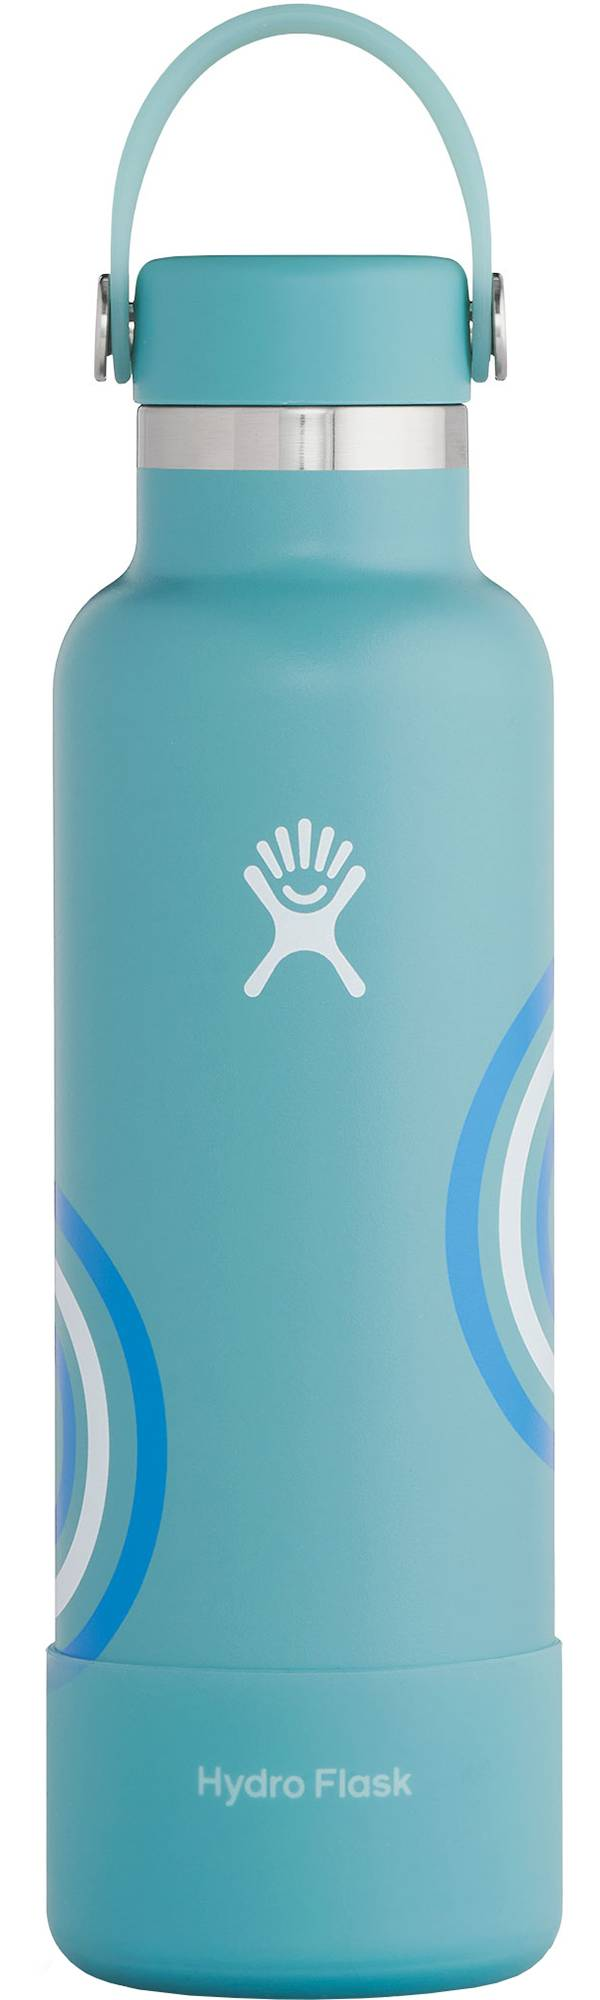 Hydro Flask 21 oz. Refill For Good Standard Mouth Bottle with Flex Cap product image